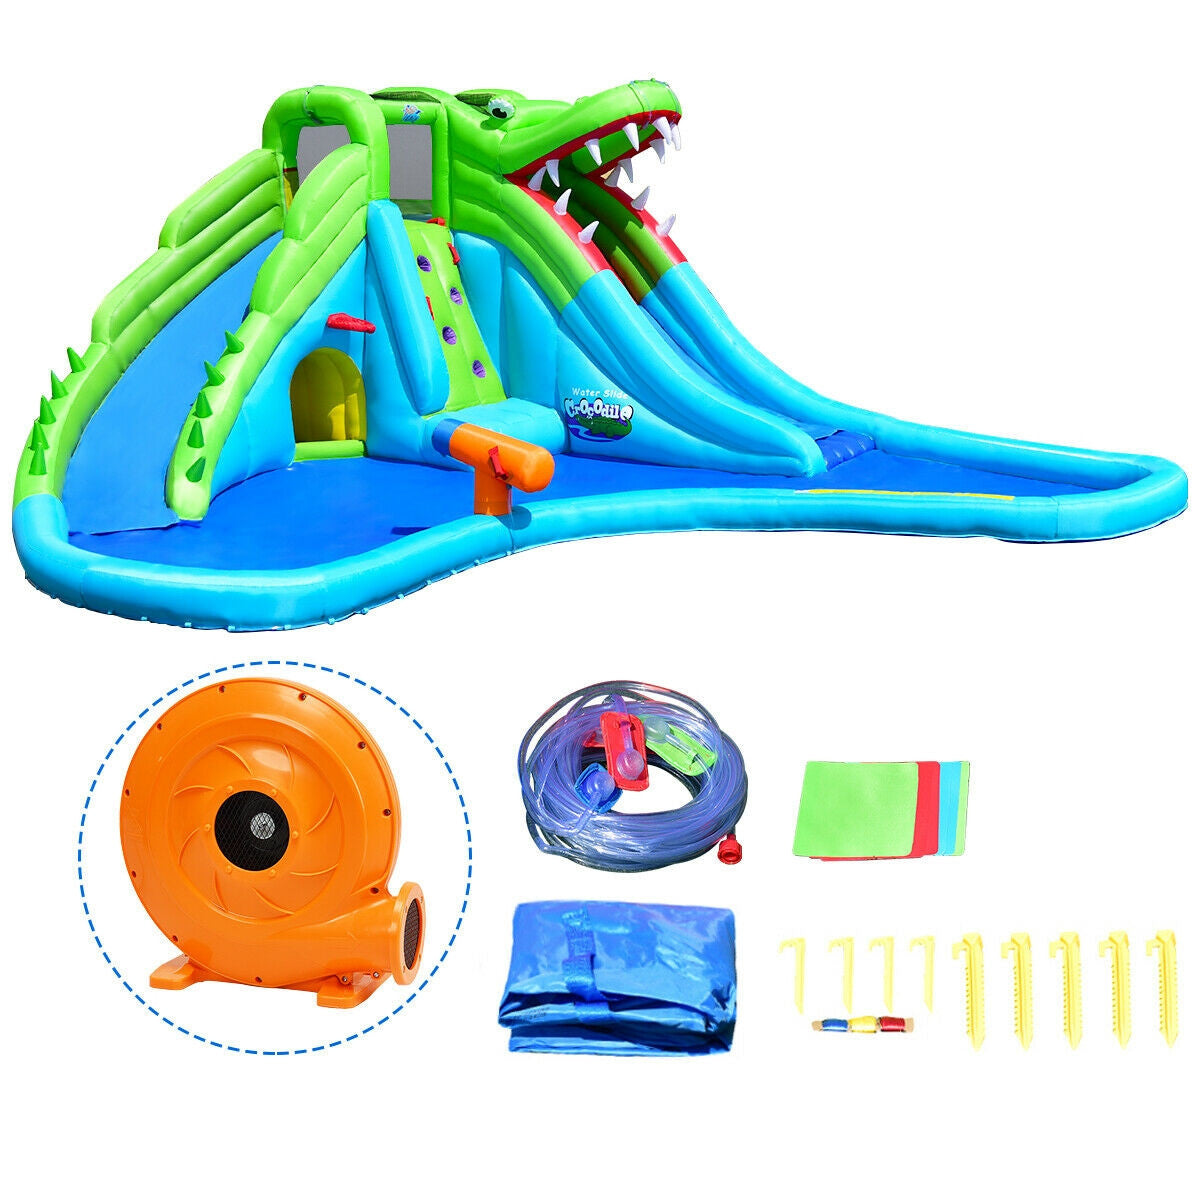 Inflatable Slide with Pool for Kids Bounce House includes blower and bag